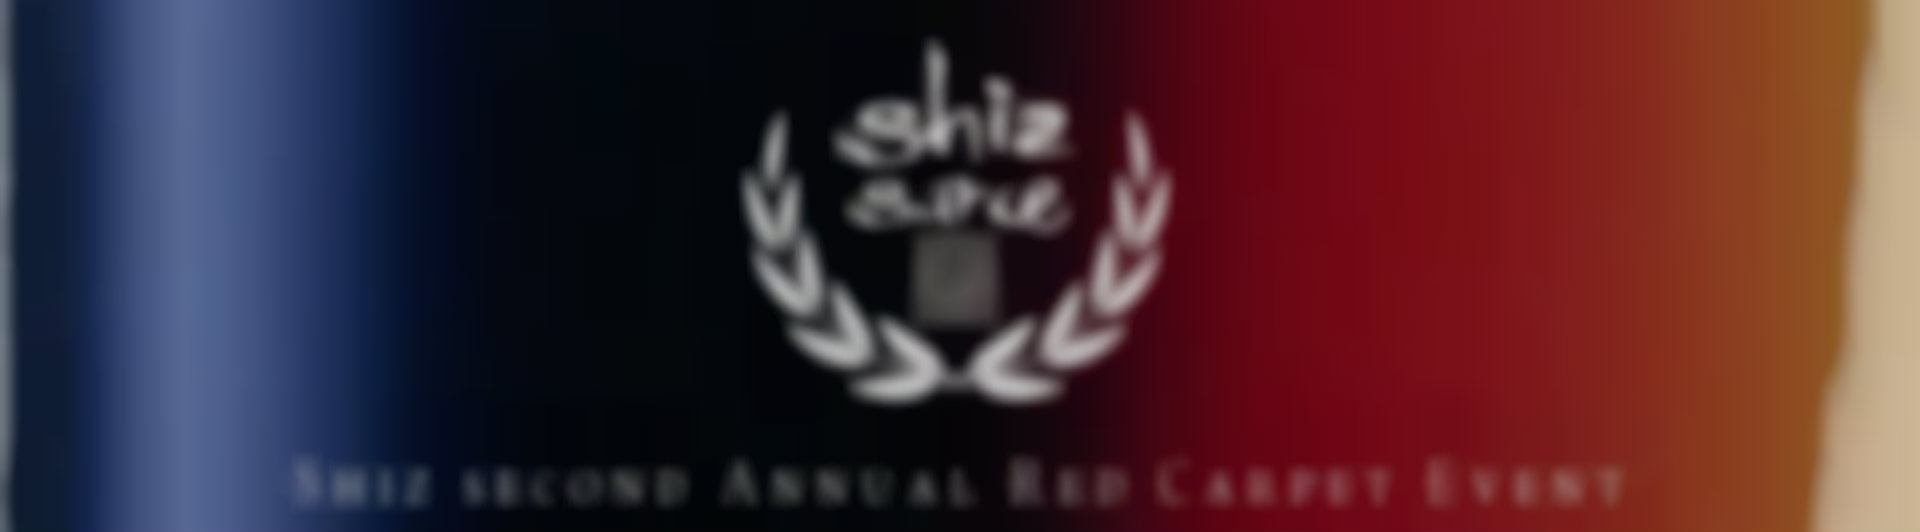 Shiz Annual Red-Carpet Events 2019 teaser trailer